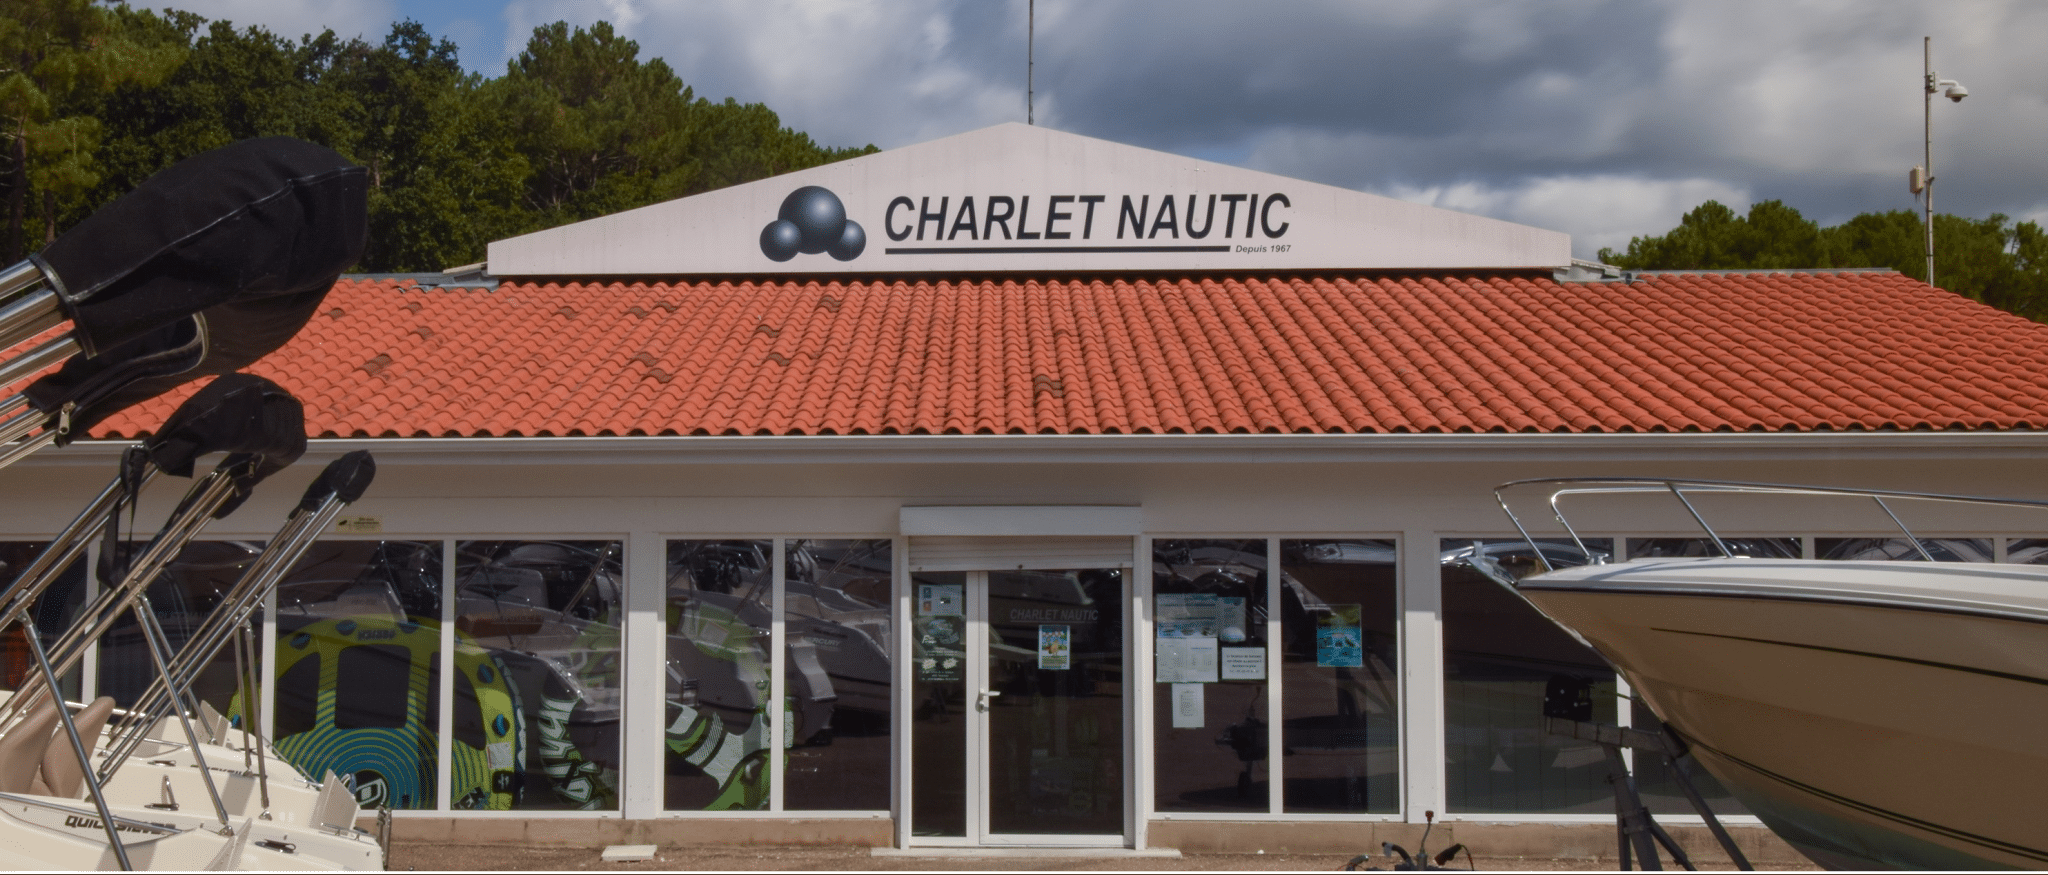 Charlet Nautic Biscarrosse